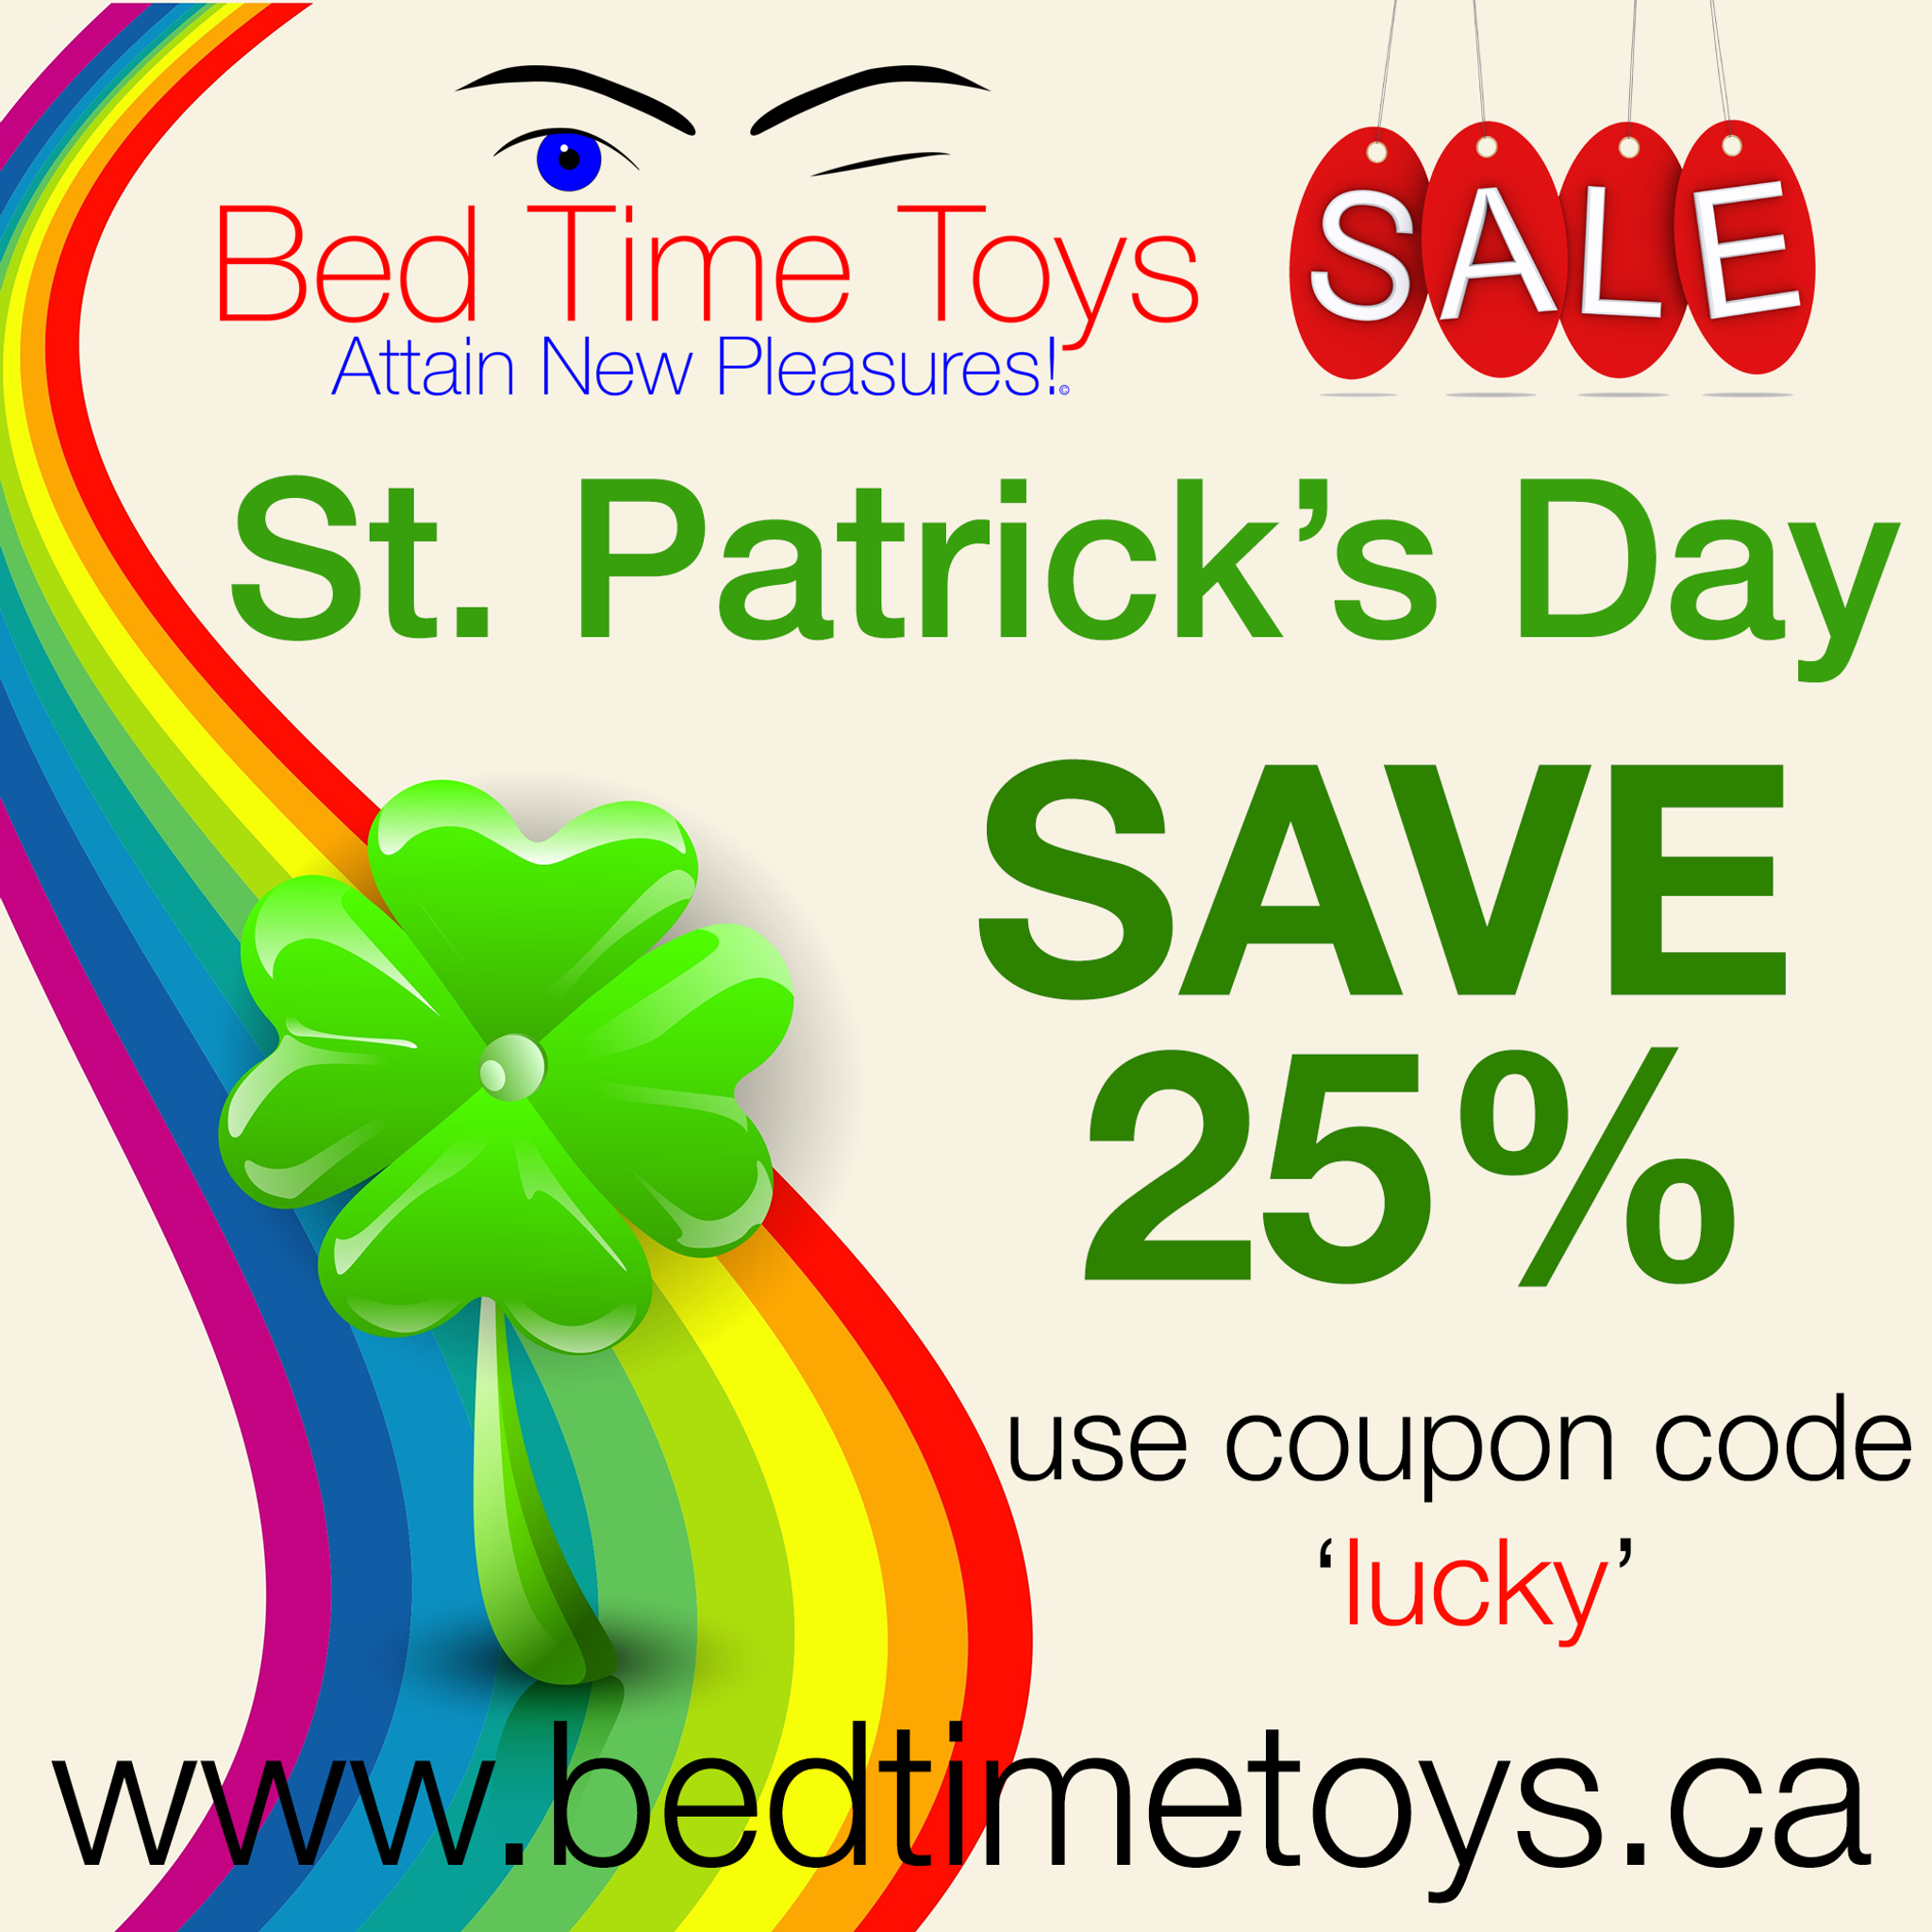 St. Patrick's Day Sale at Bed Time Toys, Sex Toys Canada